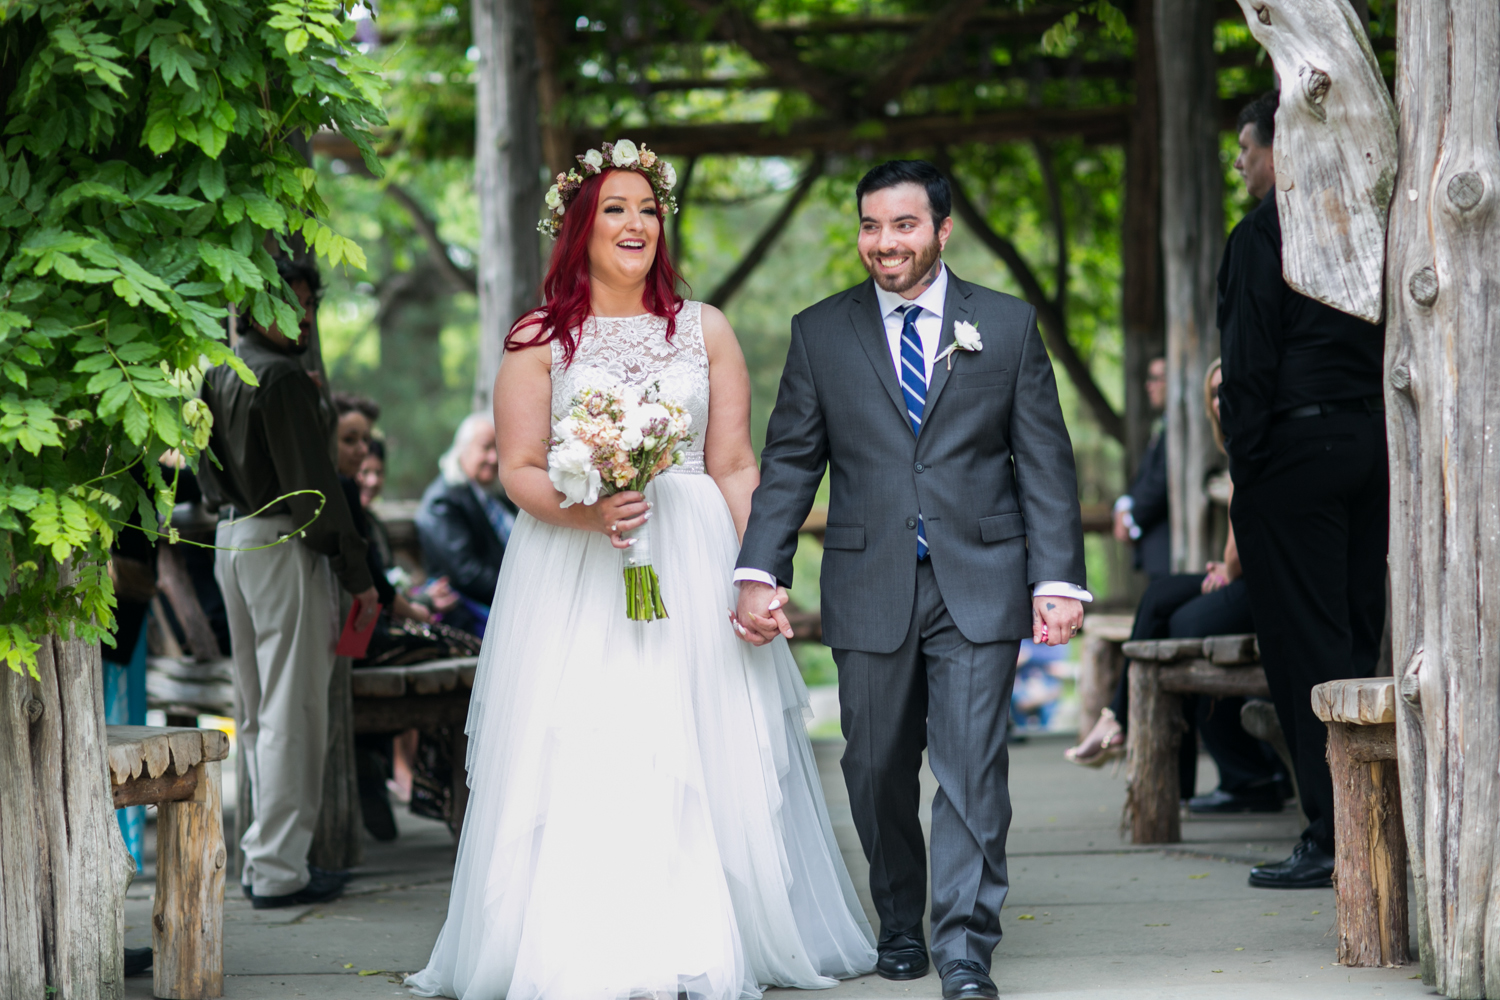 Intimate Wedding in Central Park's Cop Cot